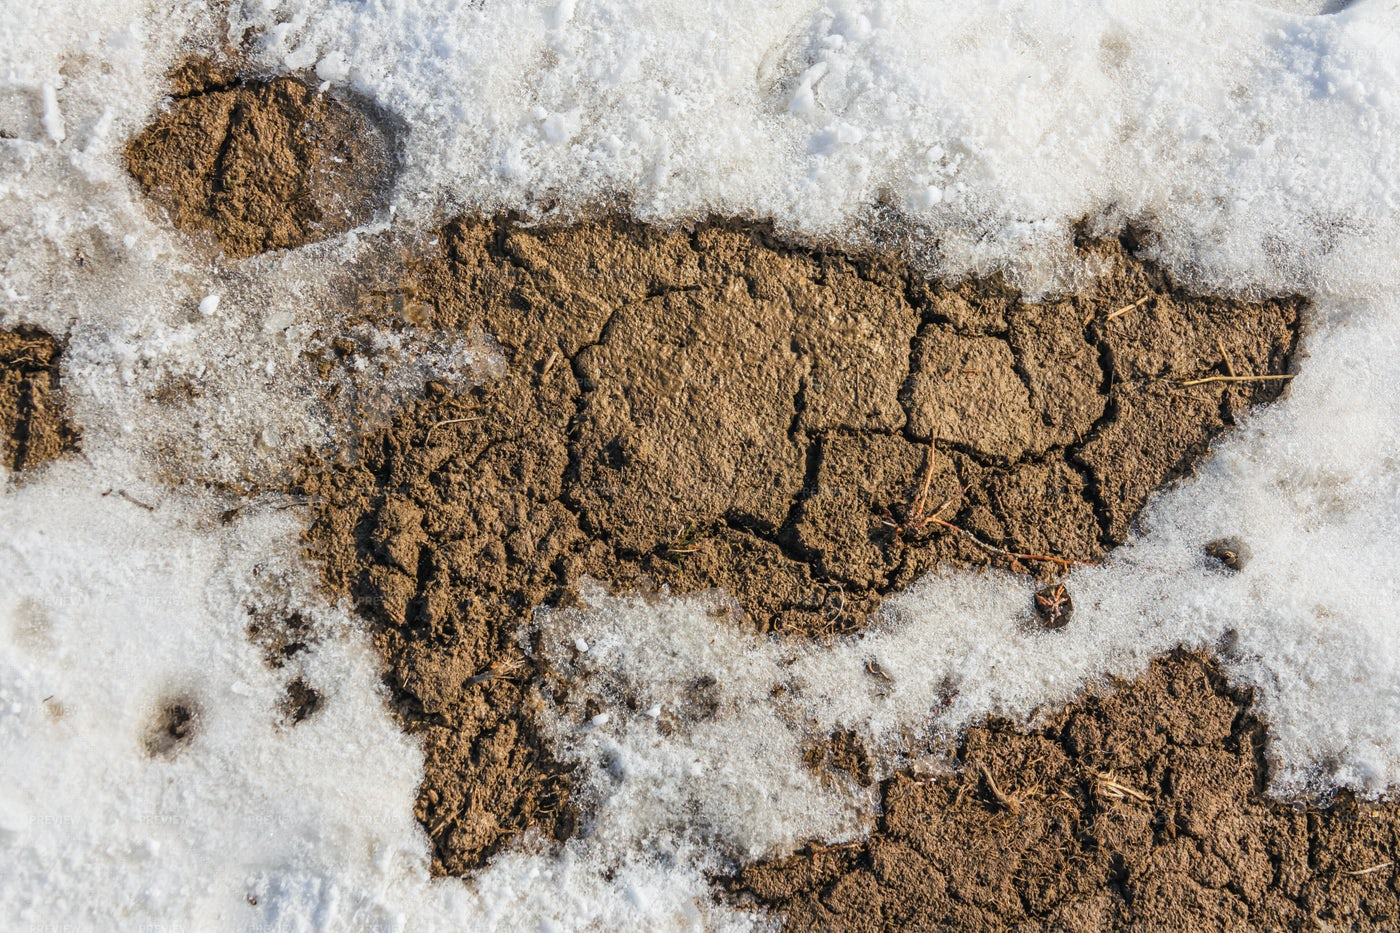 Texture Of Snow And Clay: Stock Photos